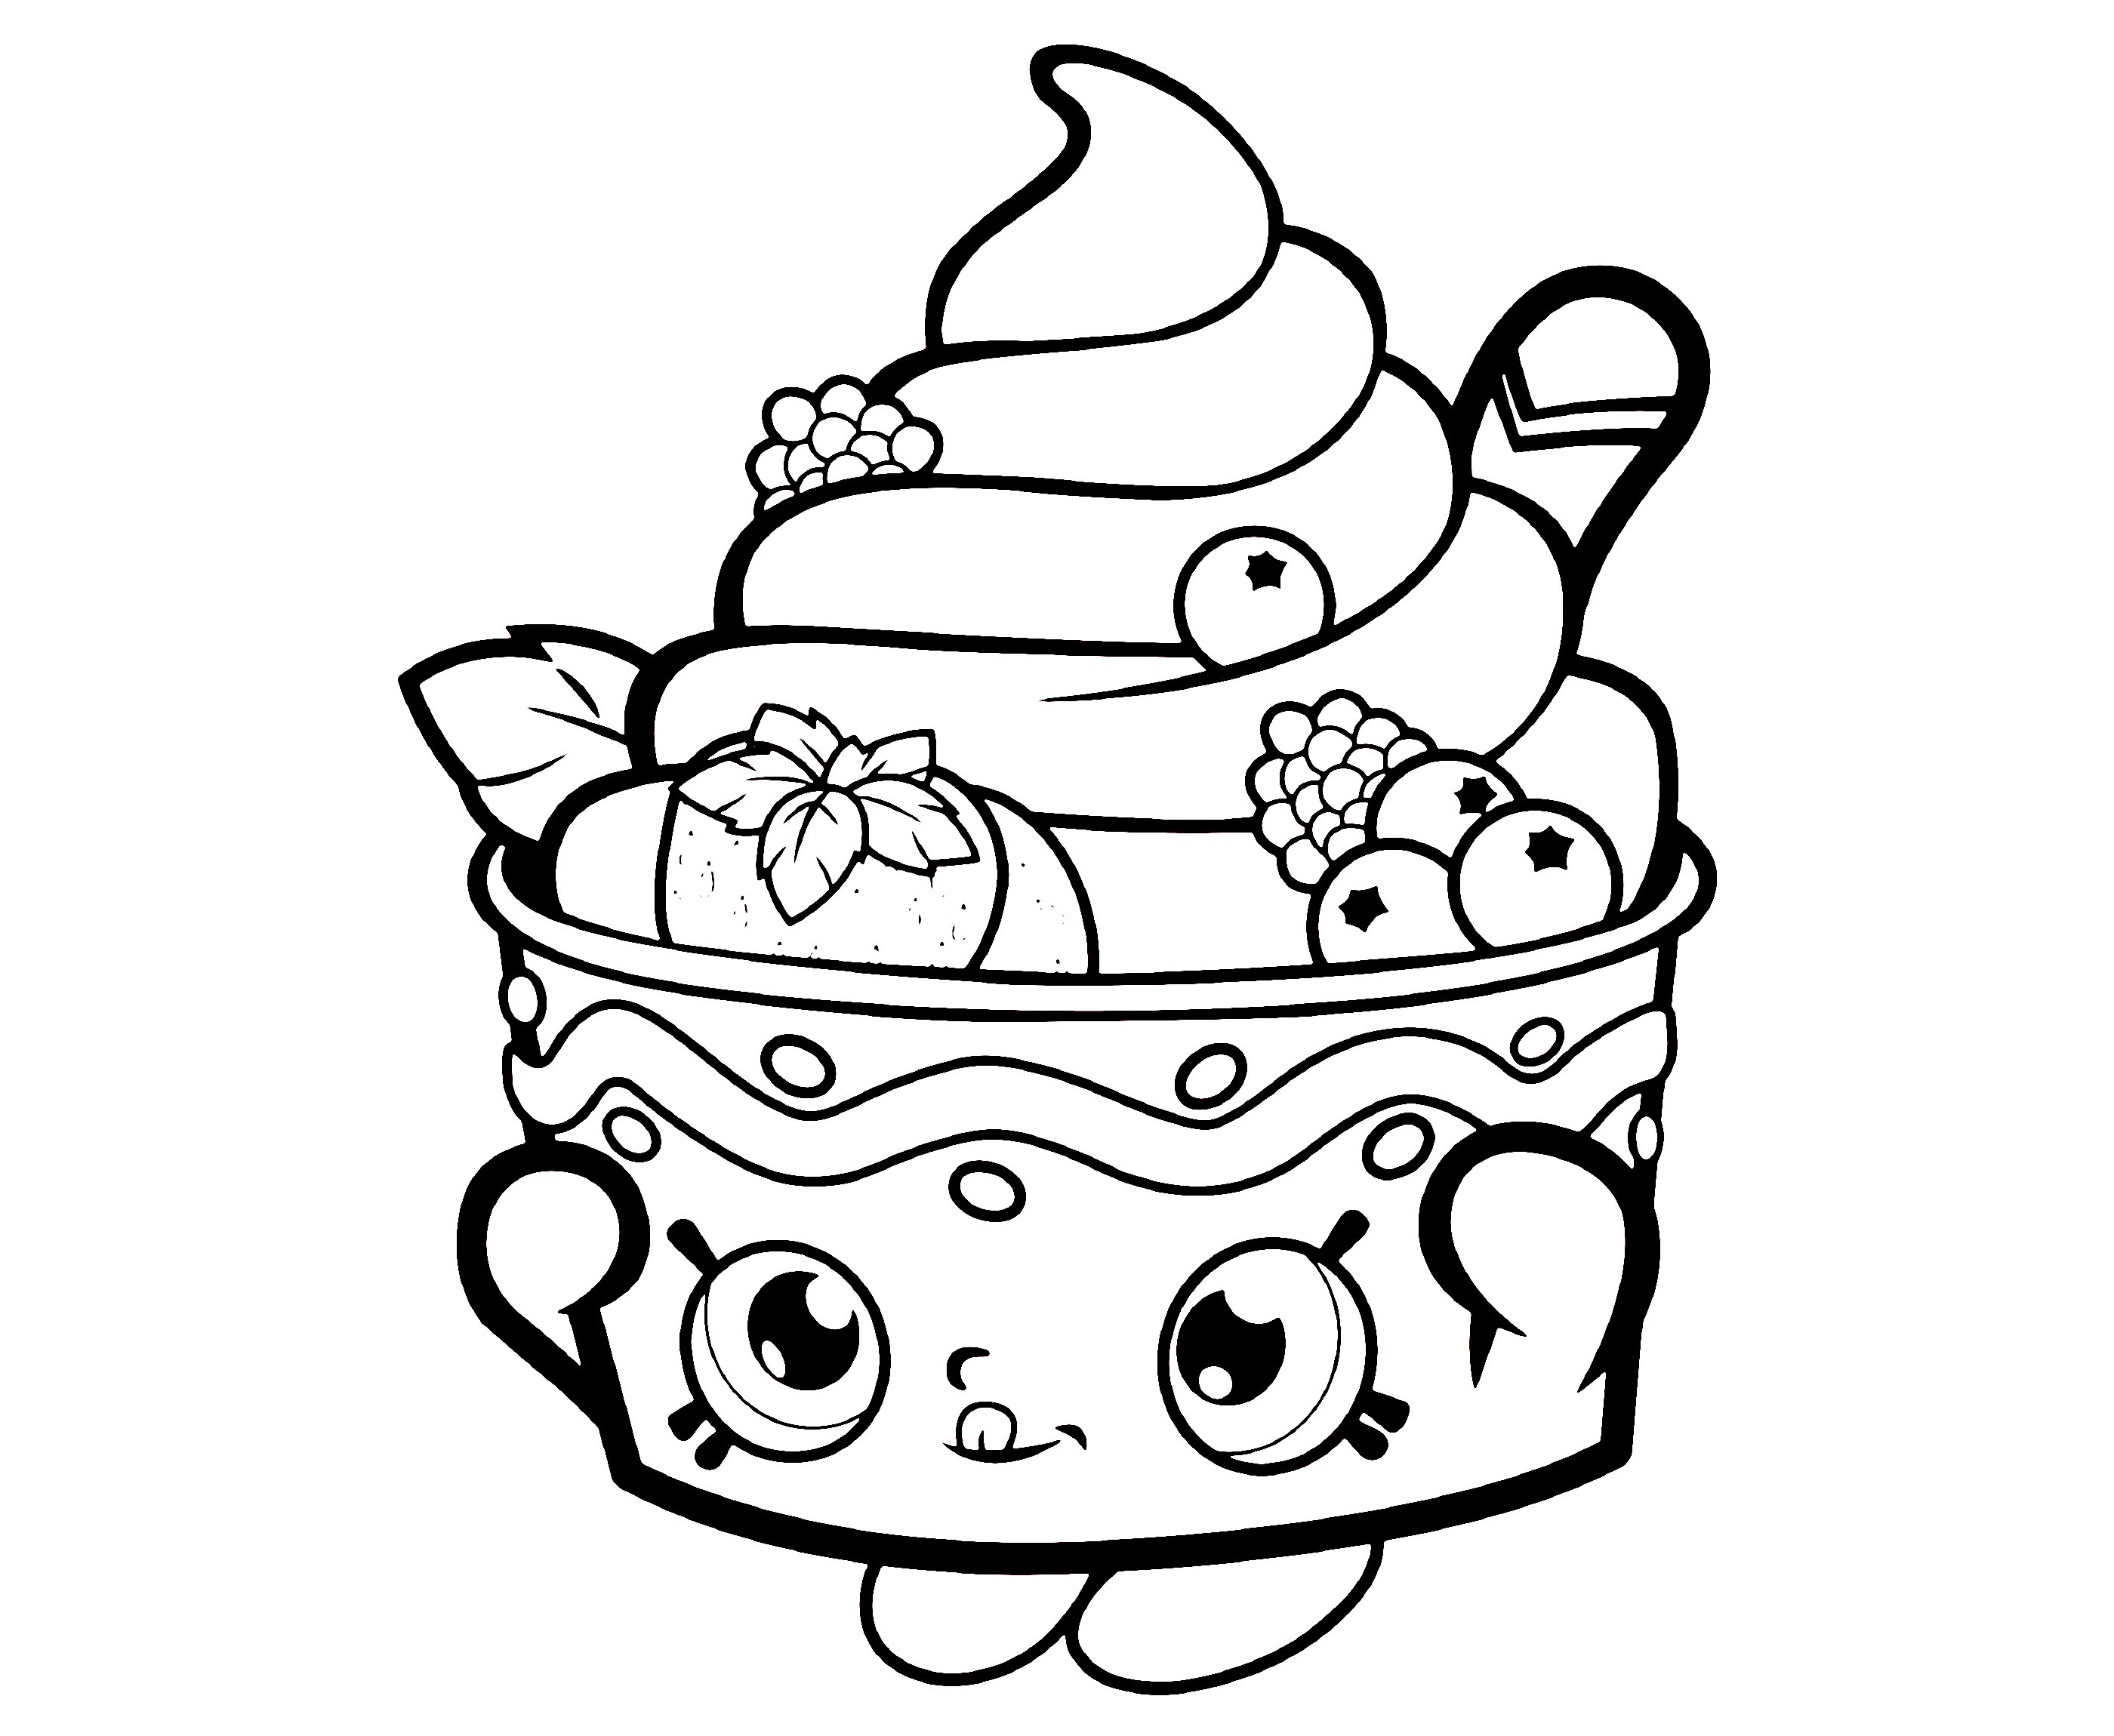 Shopkins Icecream Coloring Page for Kids